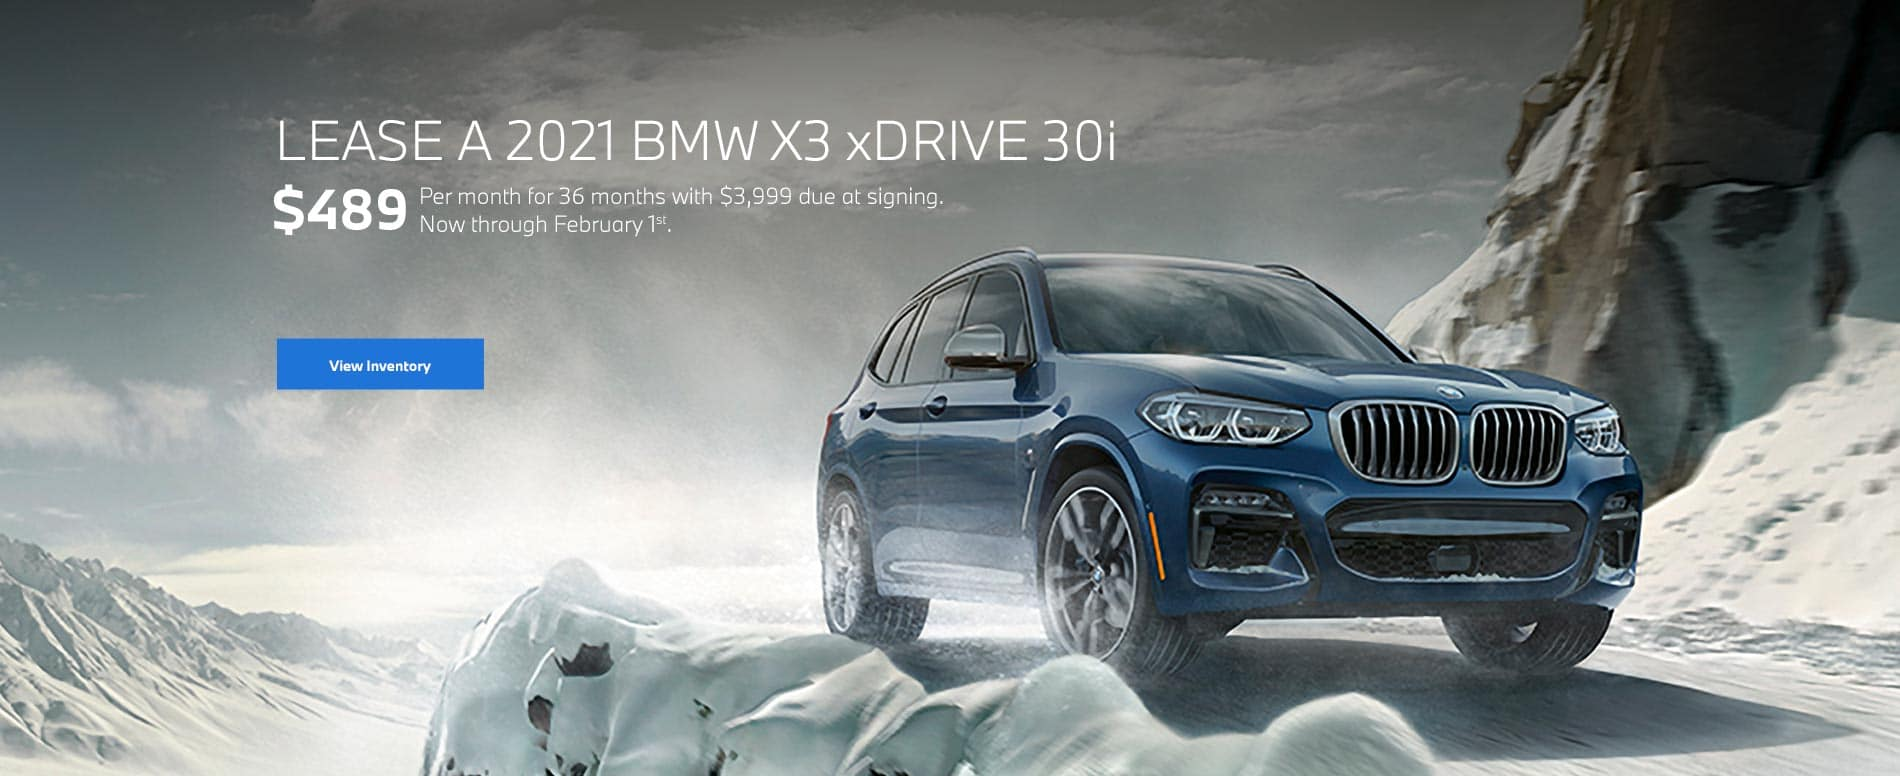 2021 BMW X3 Lease Special